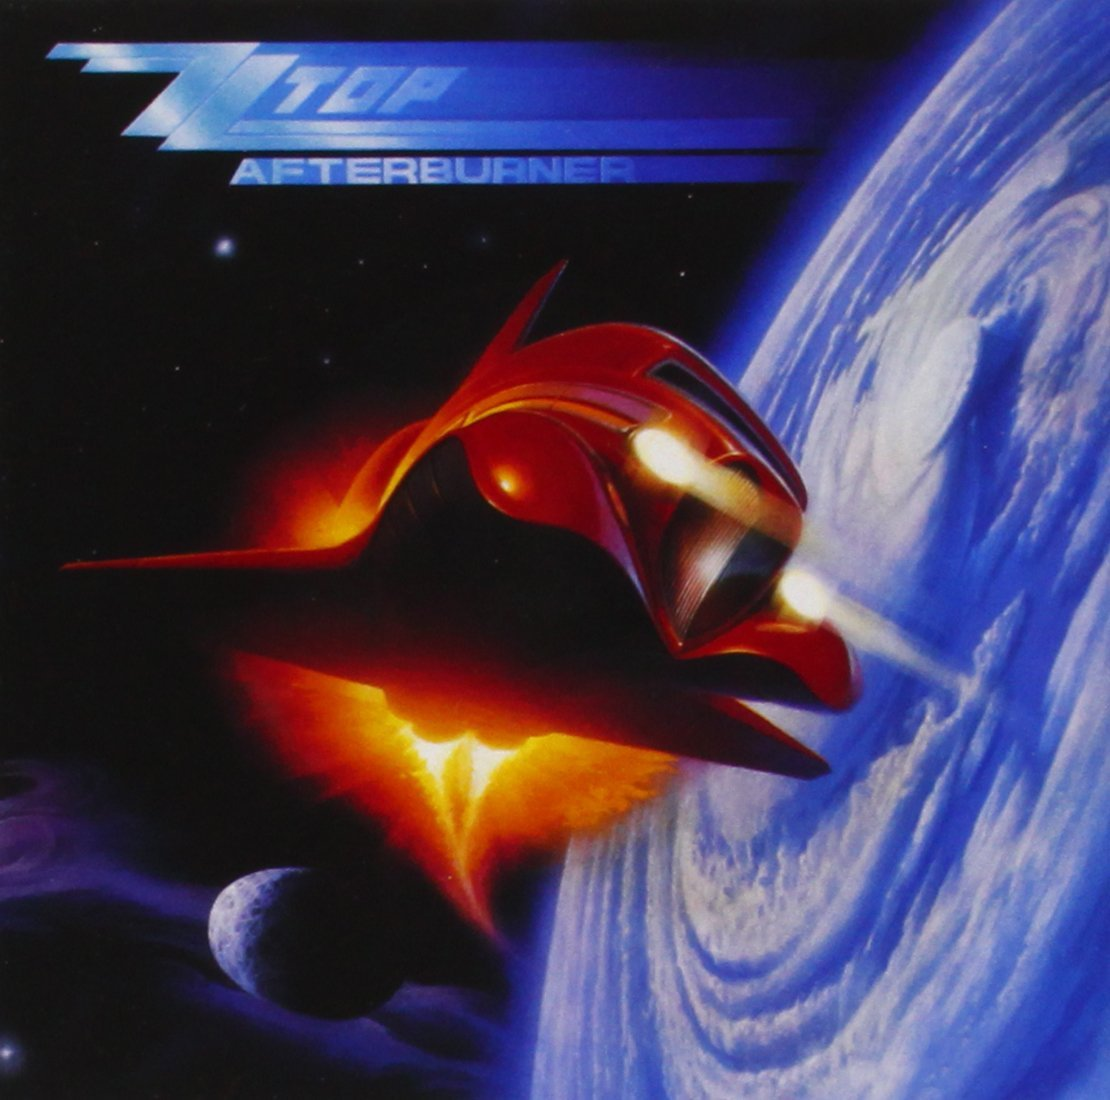 ZZ Top Afterburner Vinyl